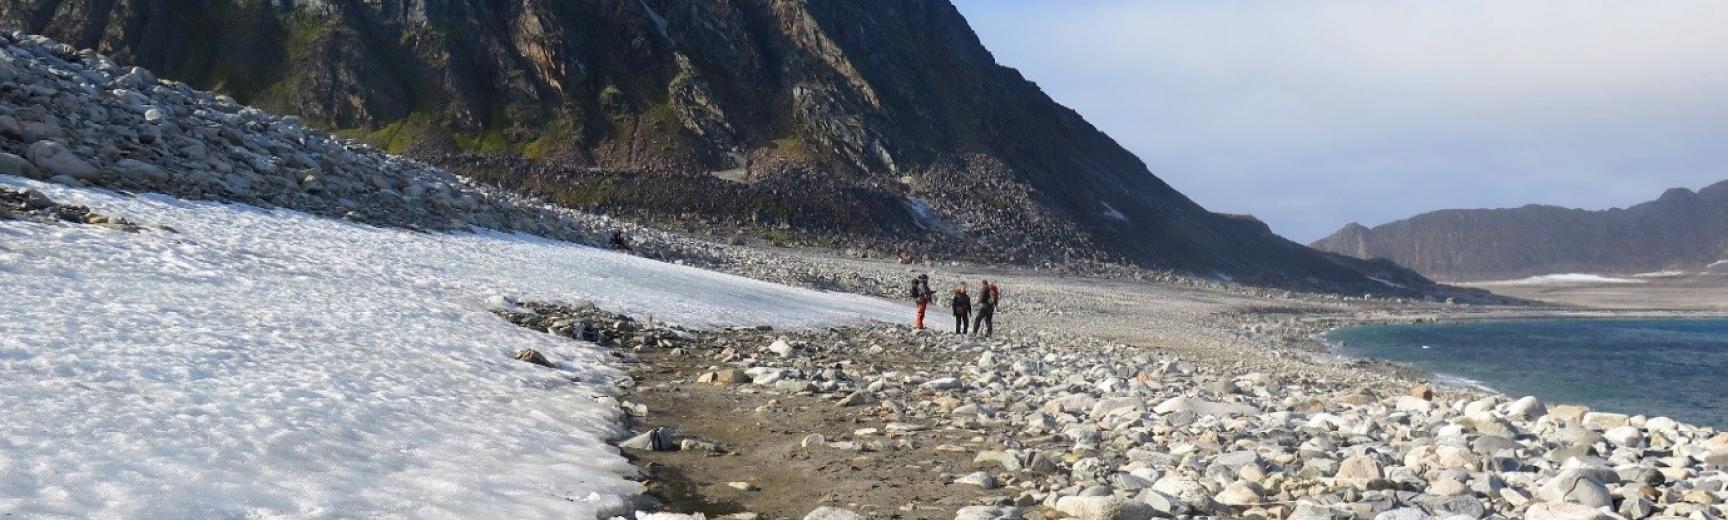 Three people walk across a beach in the artic. There is snow on the left and a moutain in the background.